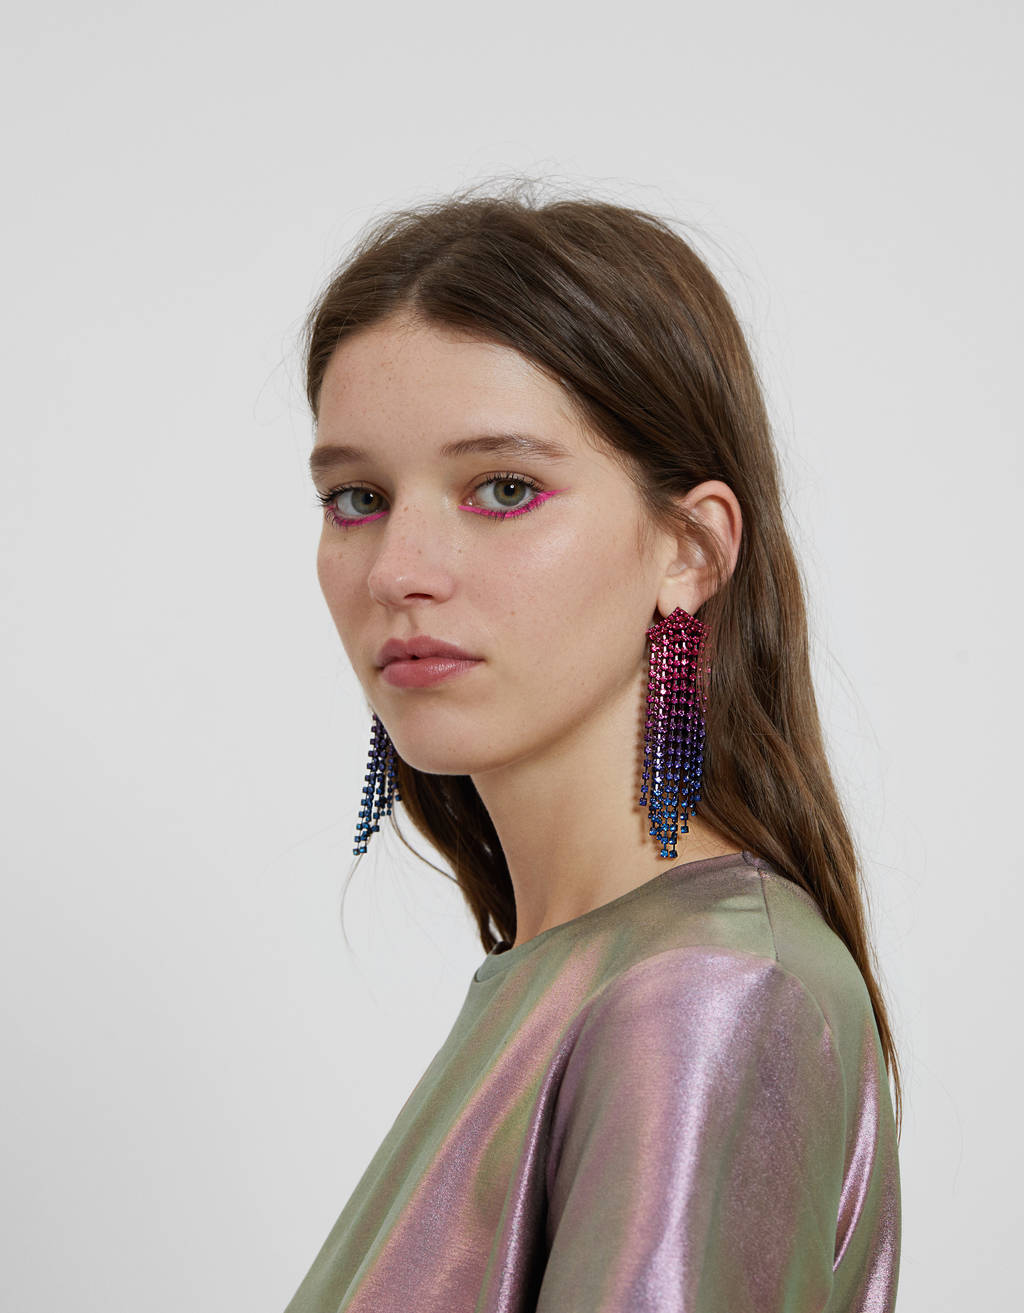 Shiny earrings